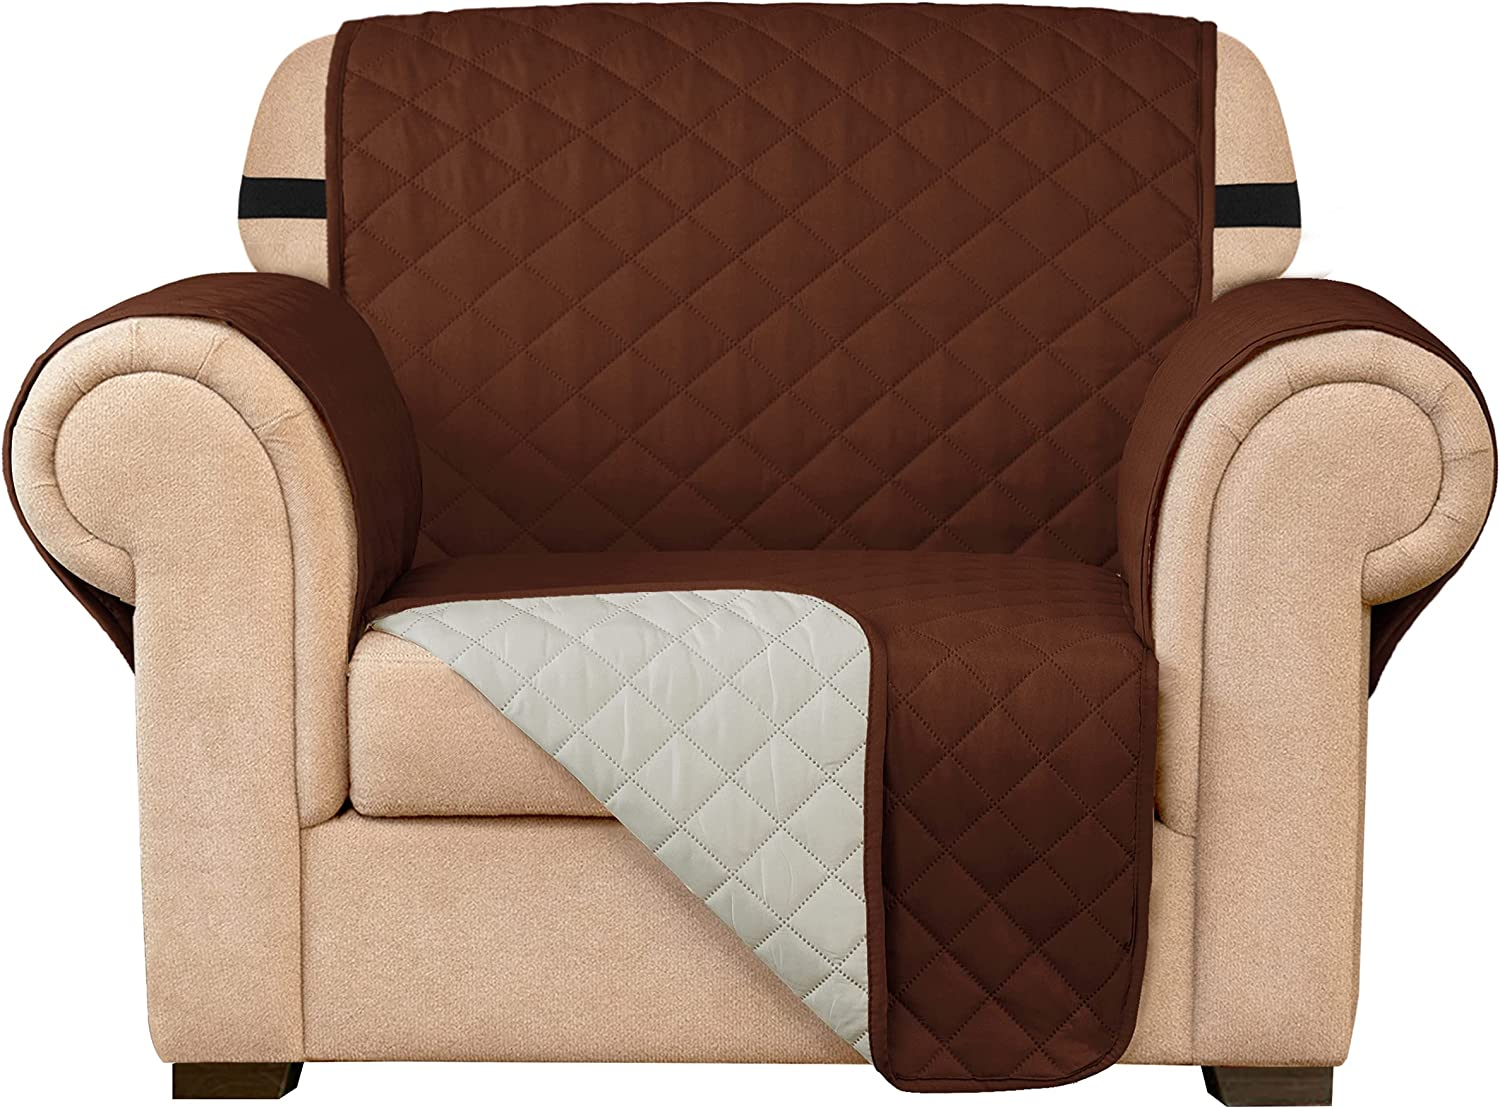 Subrtex Sofa Slipcover Reversible Chair Cover Quilted Couch Cover Furniture Protector with Elastic Straps in Living Room Washable Slip Cover for Pets Kids Dogs (Chair, Chocolate)